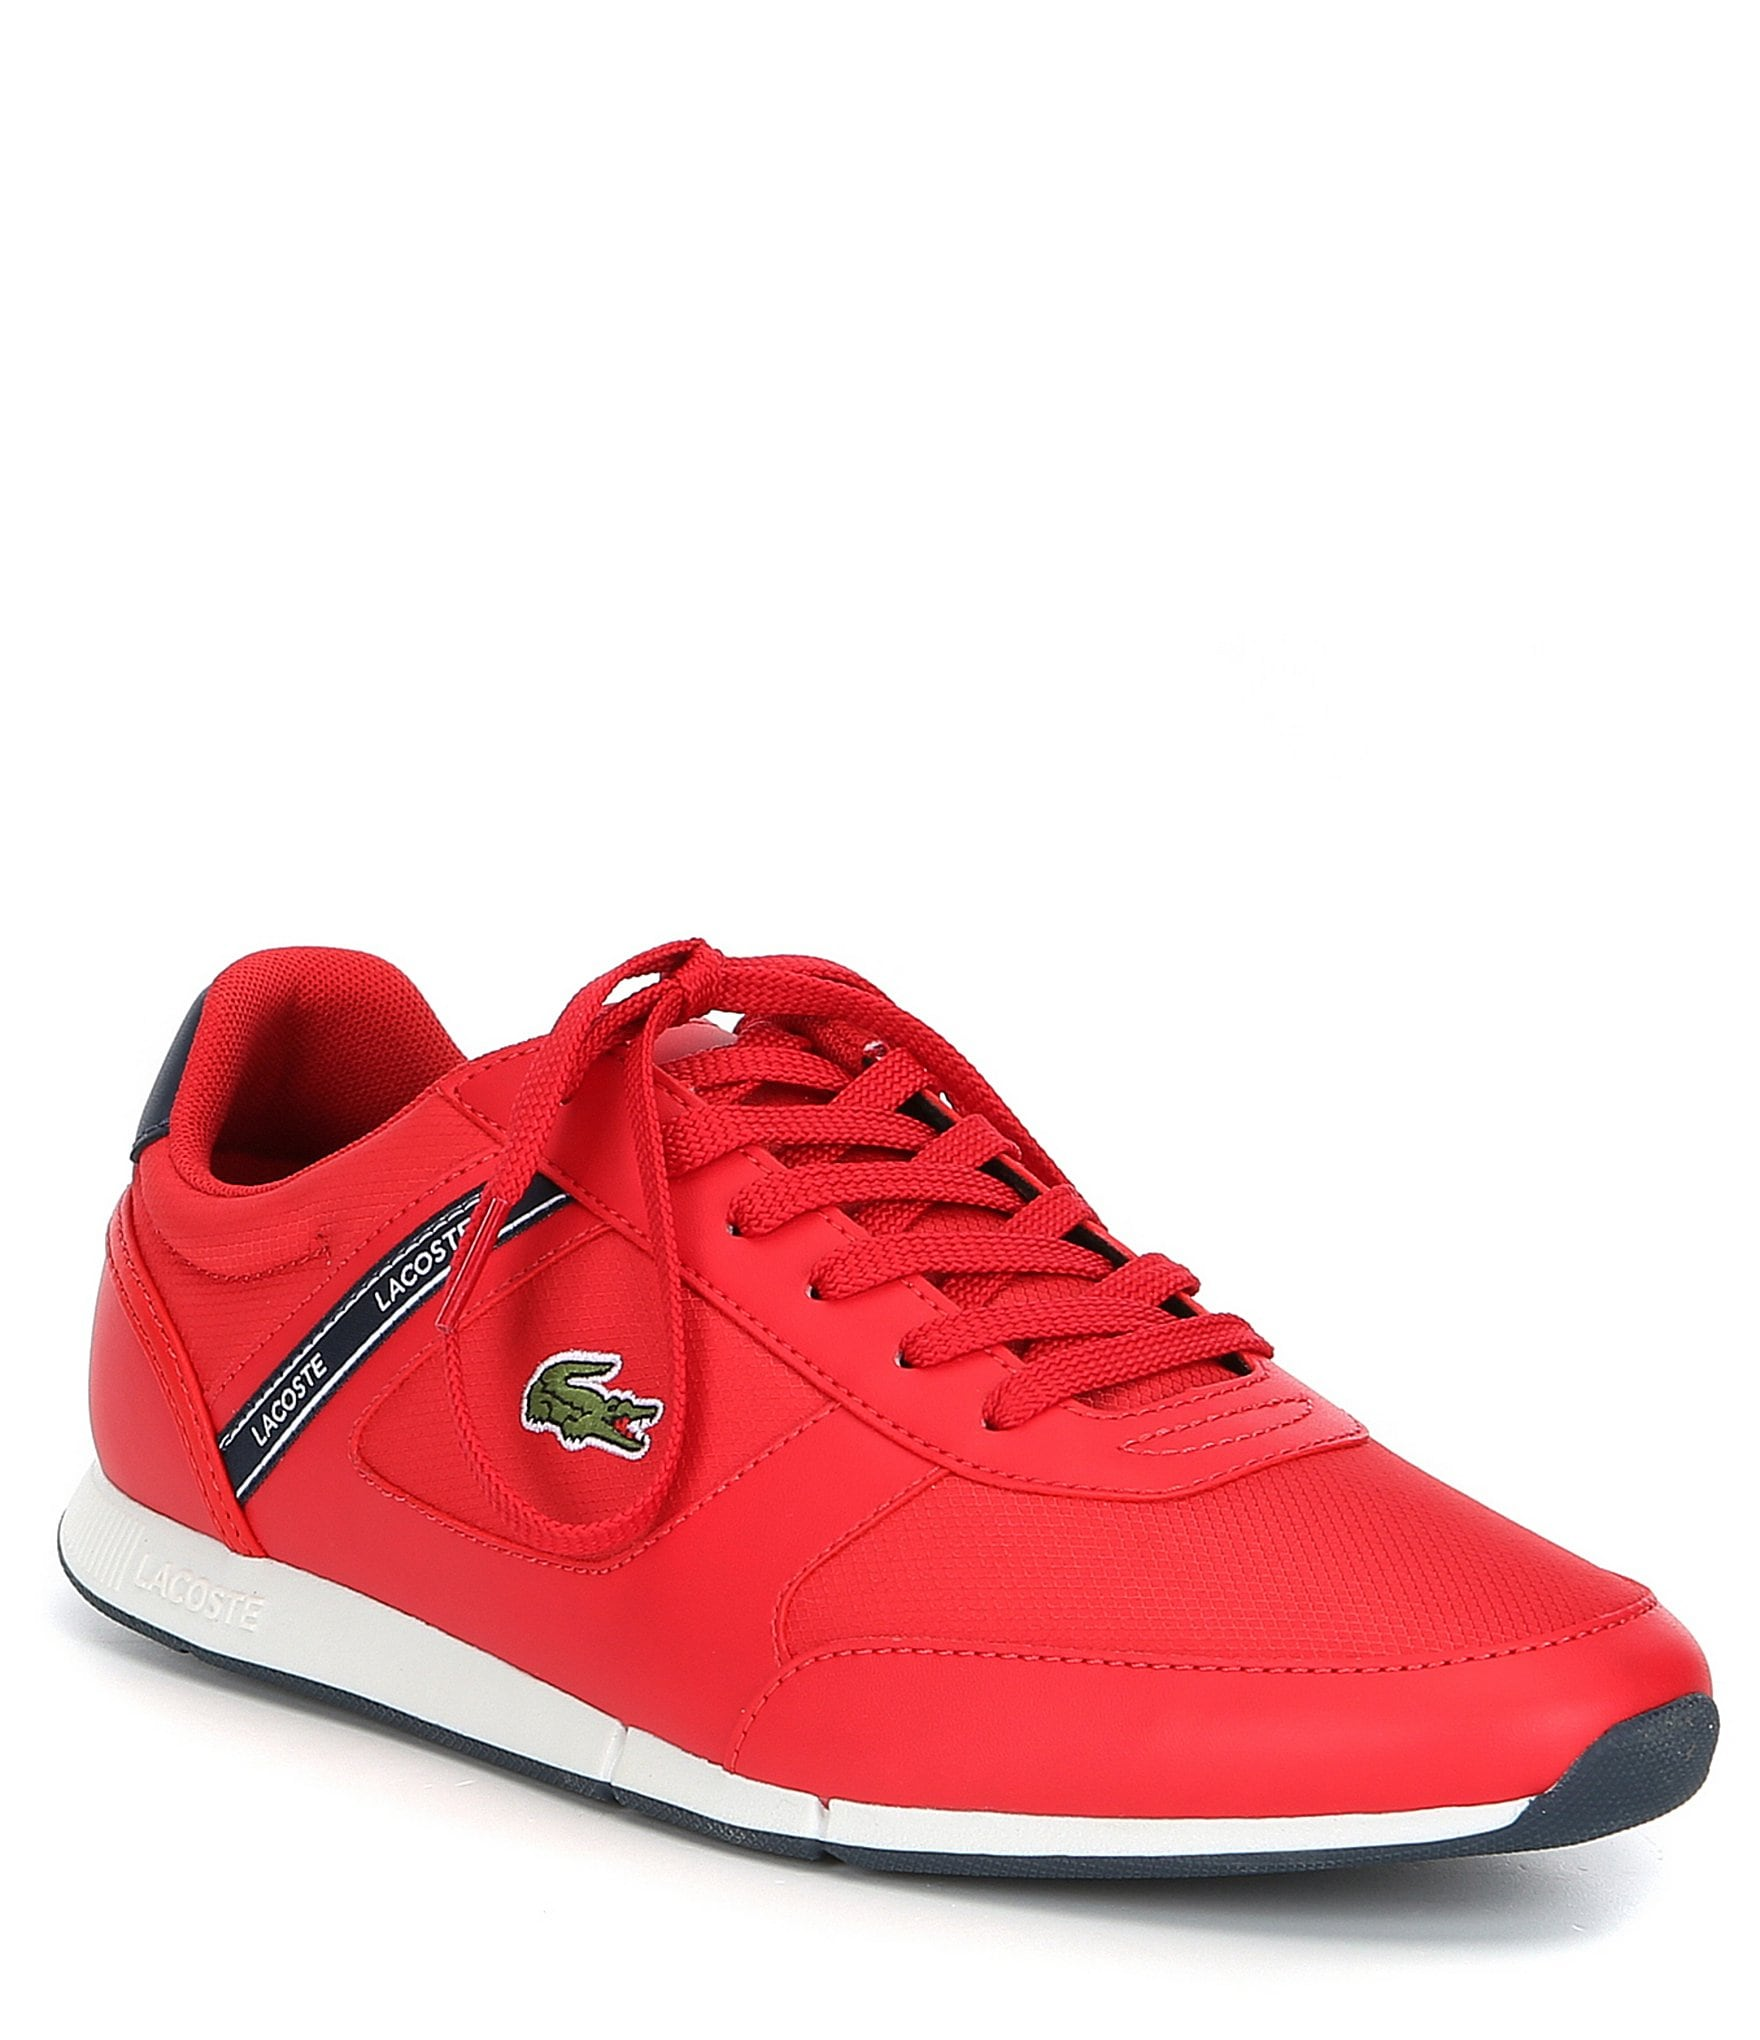 8ea72cb13bc3c Red Lacoste Shoes for Women